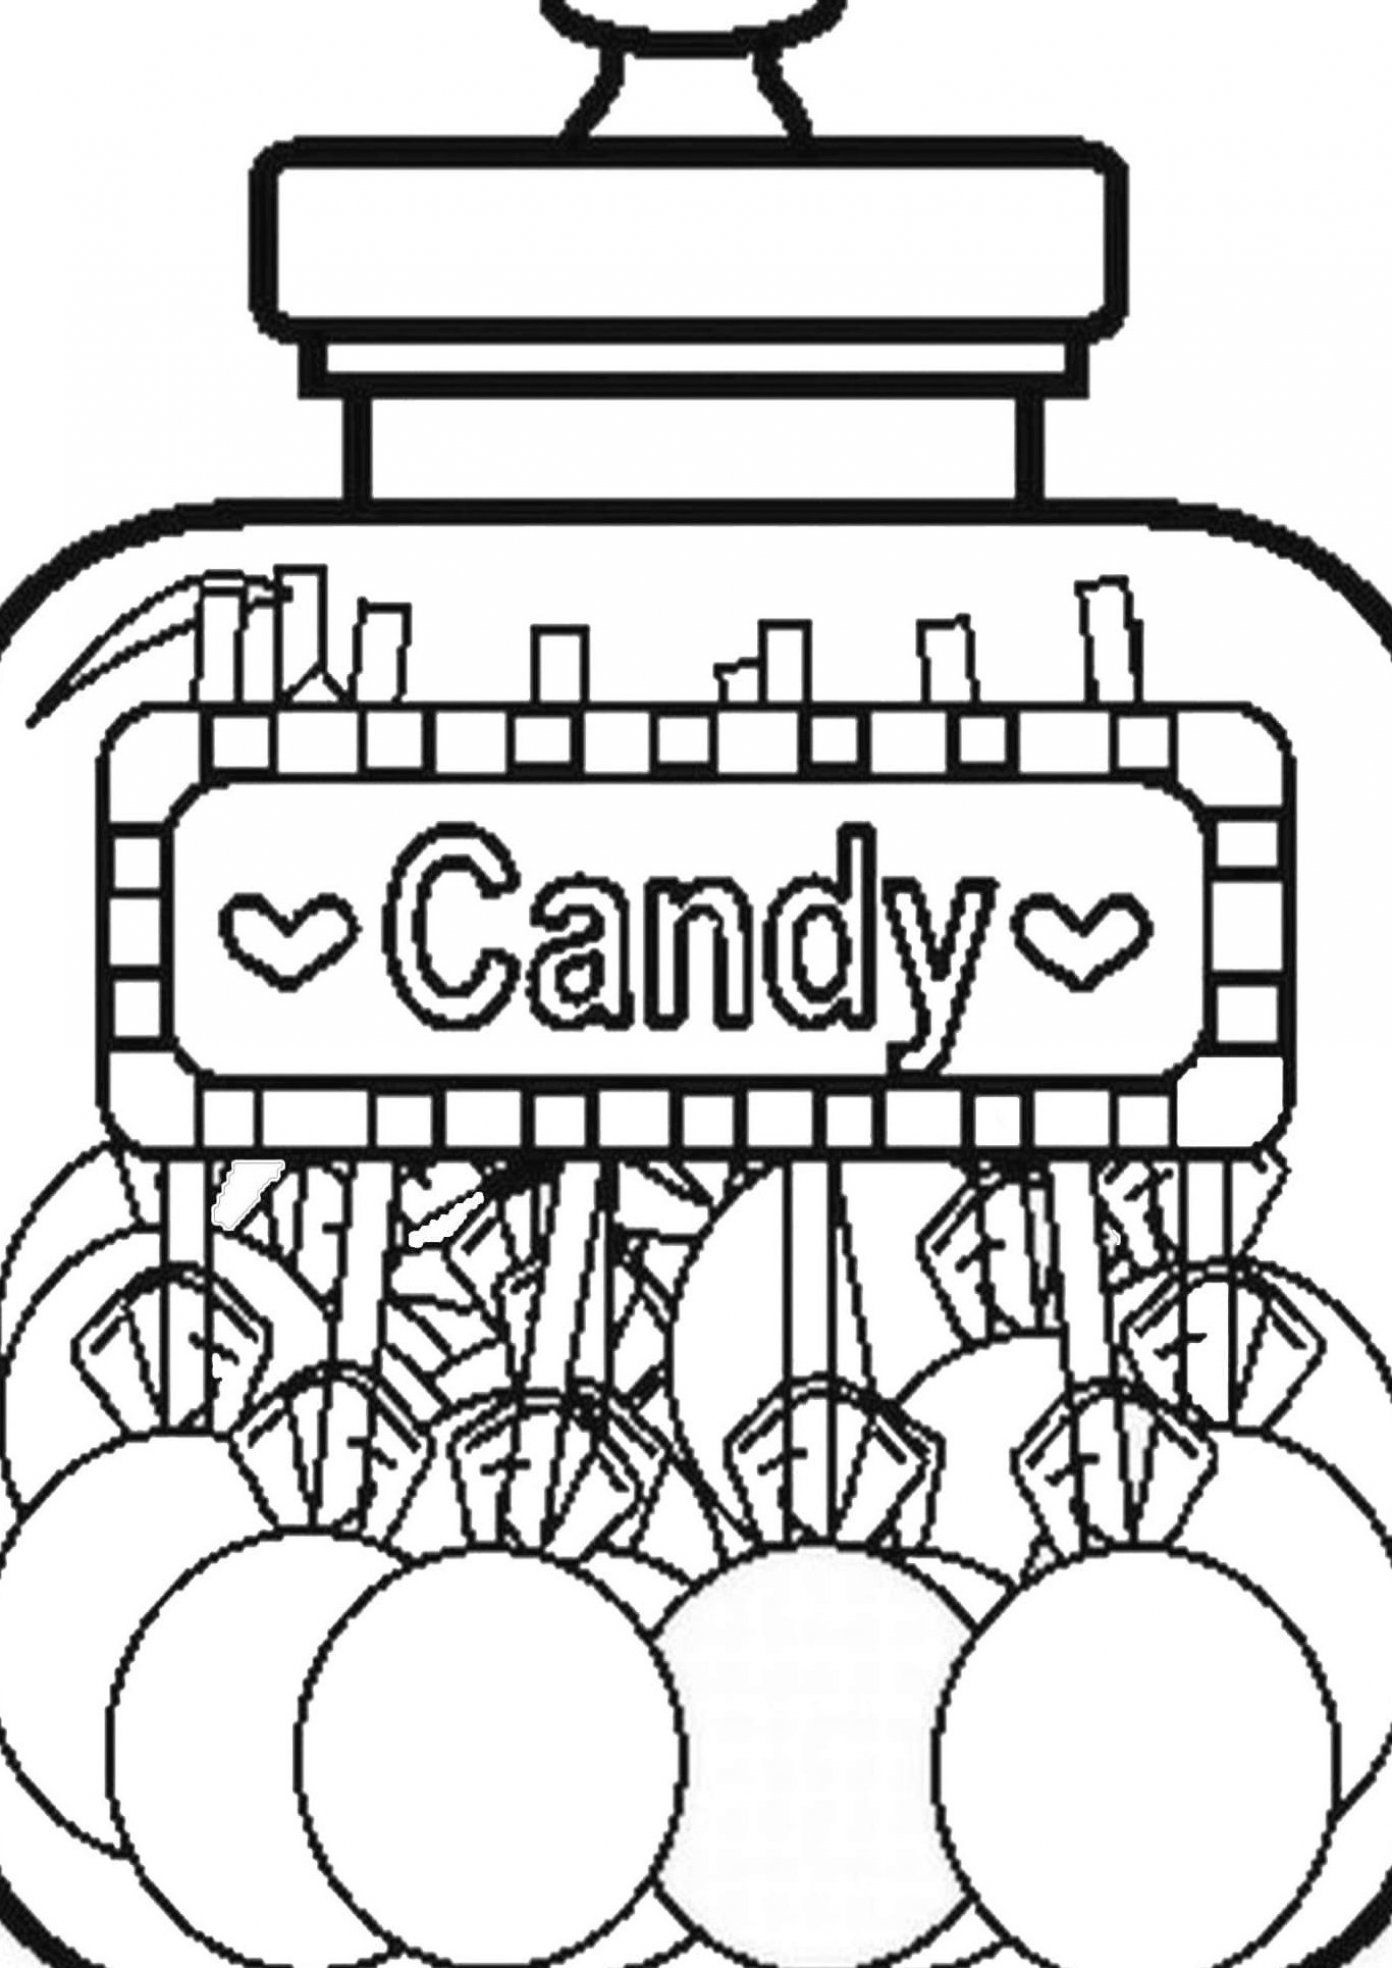 Free Easy To Print Candy Coloring Pages Tulamama In 2020 Candy Coloring Pages Printable Coloring Pages Free Printable Coloring Pages